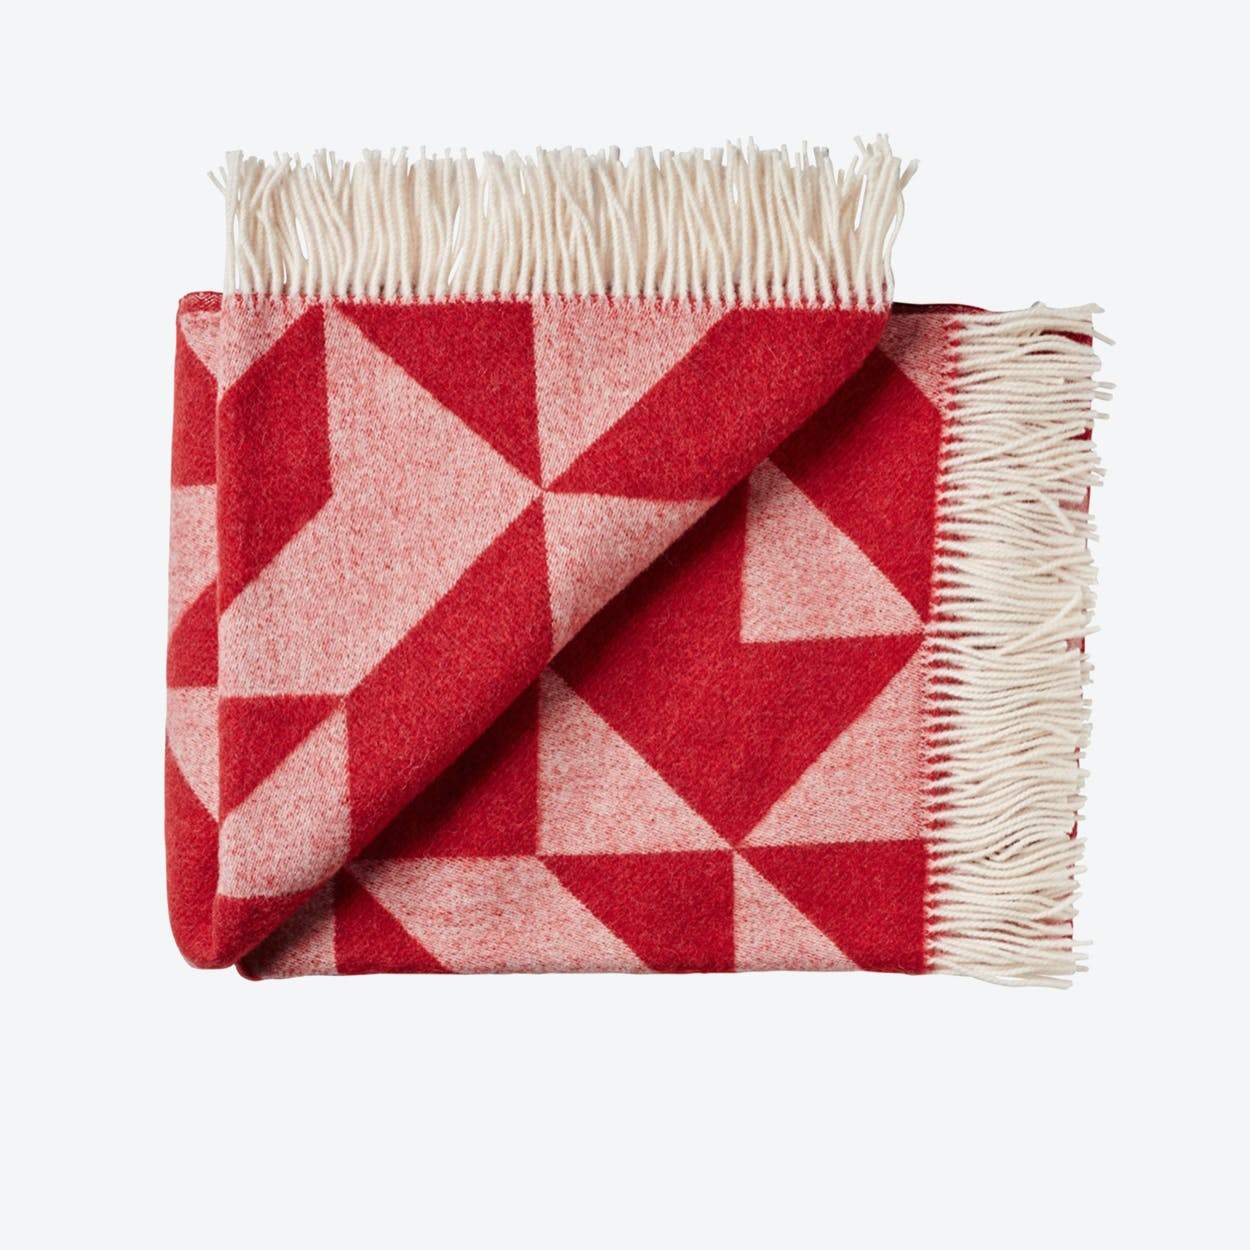 Twist A'Twill Wool Throw in Red